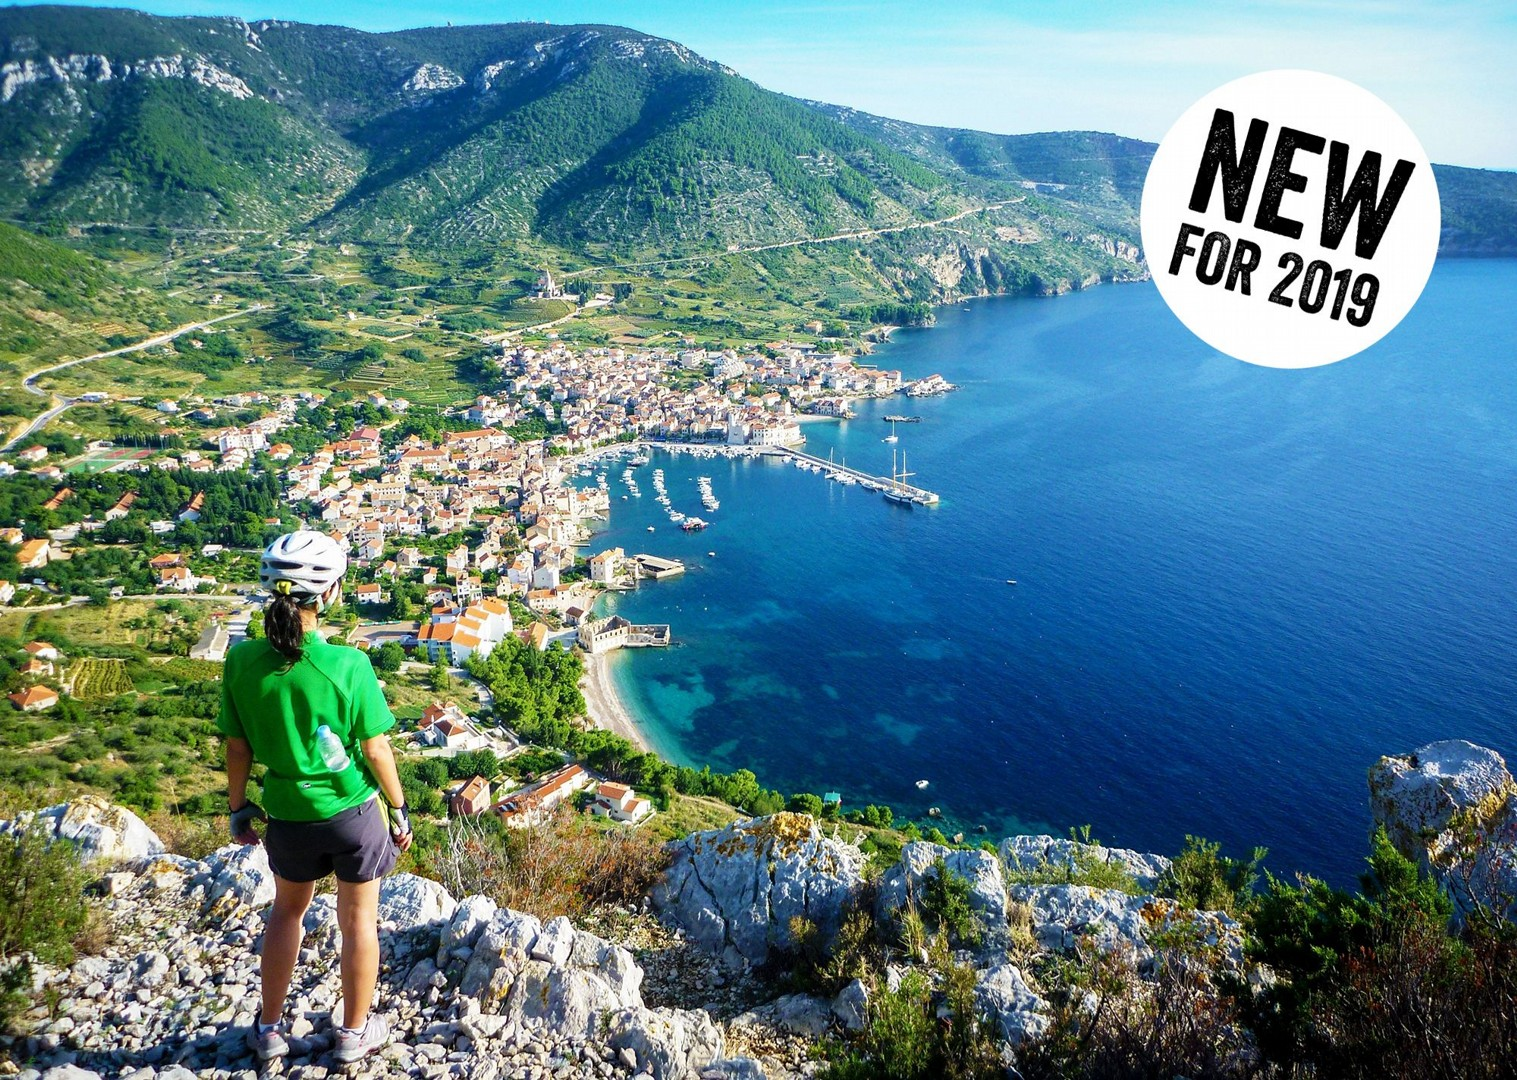 new-2019-southern-dalmatia-bike-and-boat-croatia-cycling.jpg - Croatia - Southern Dalmatia Plus - Bike and Boat Holiday - Leisure Cycling